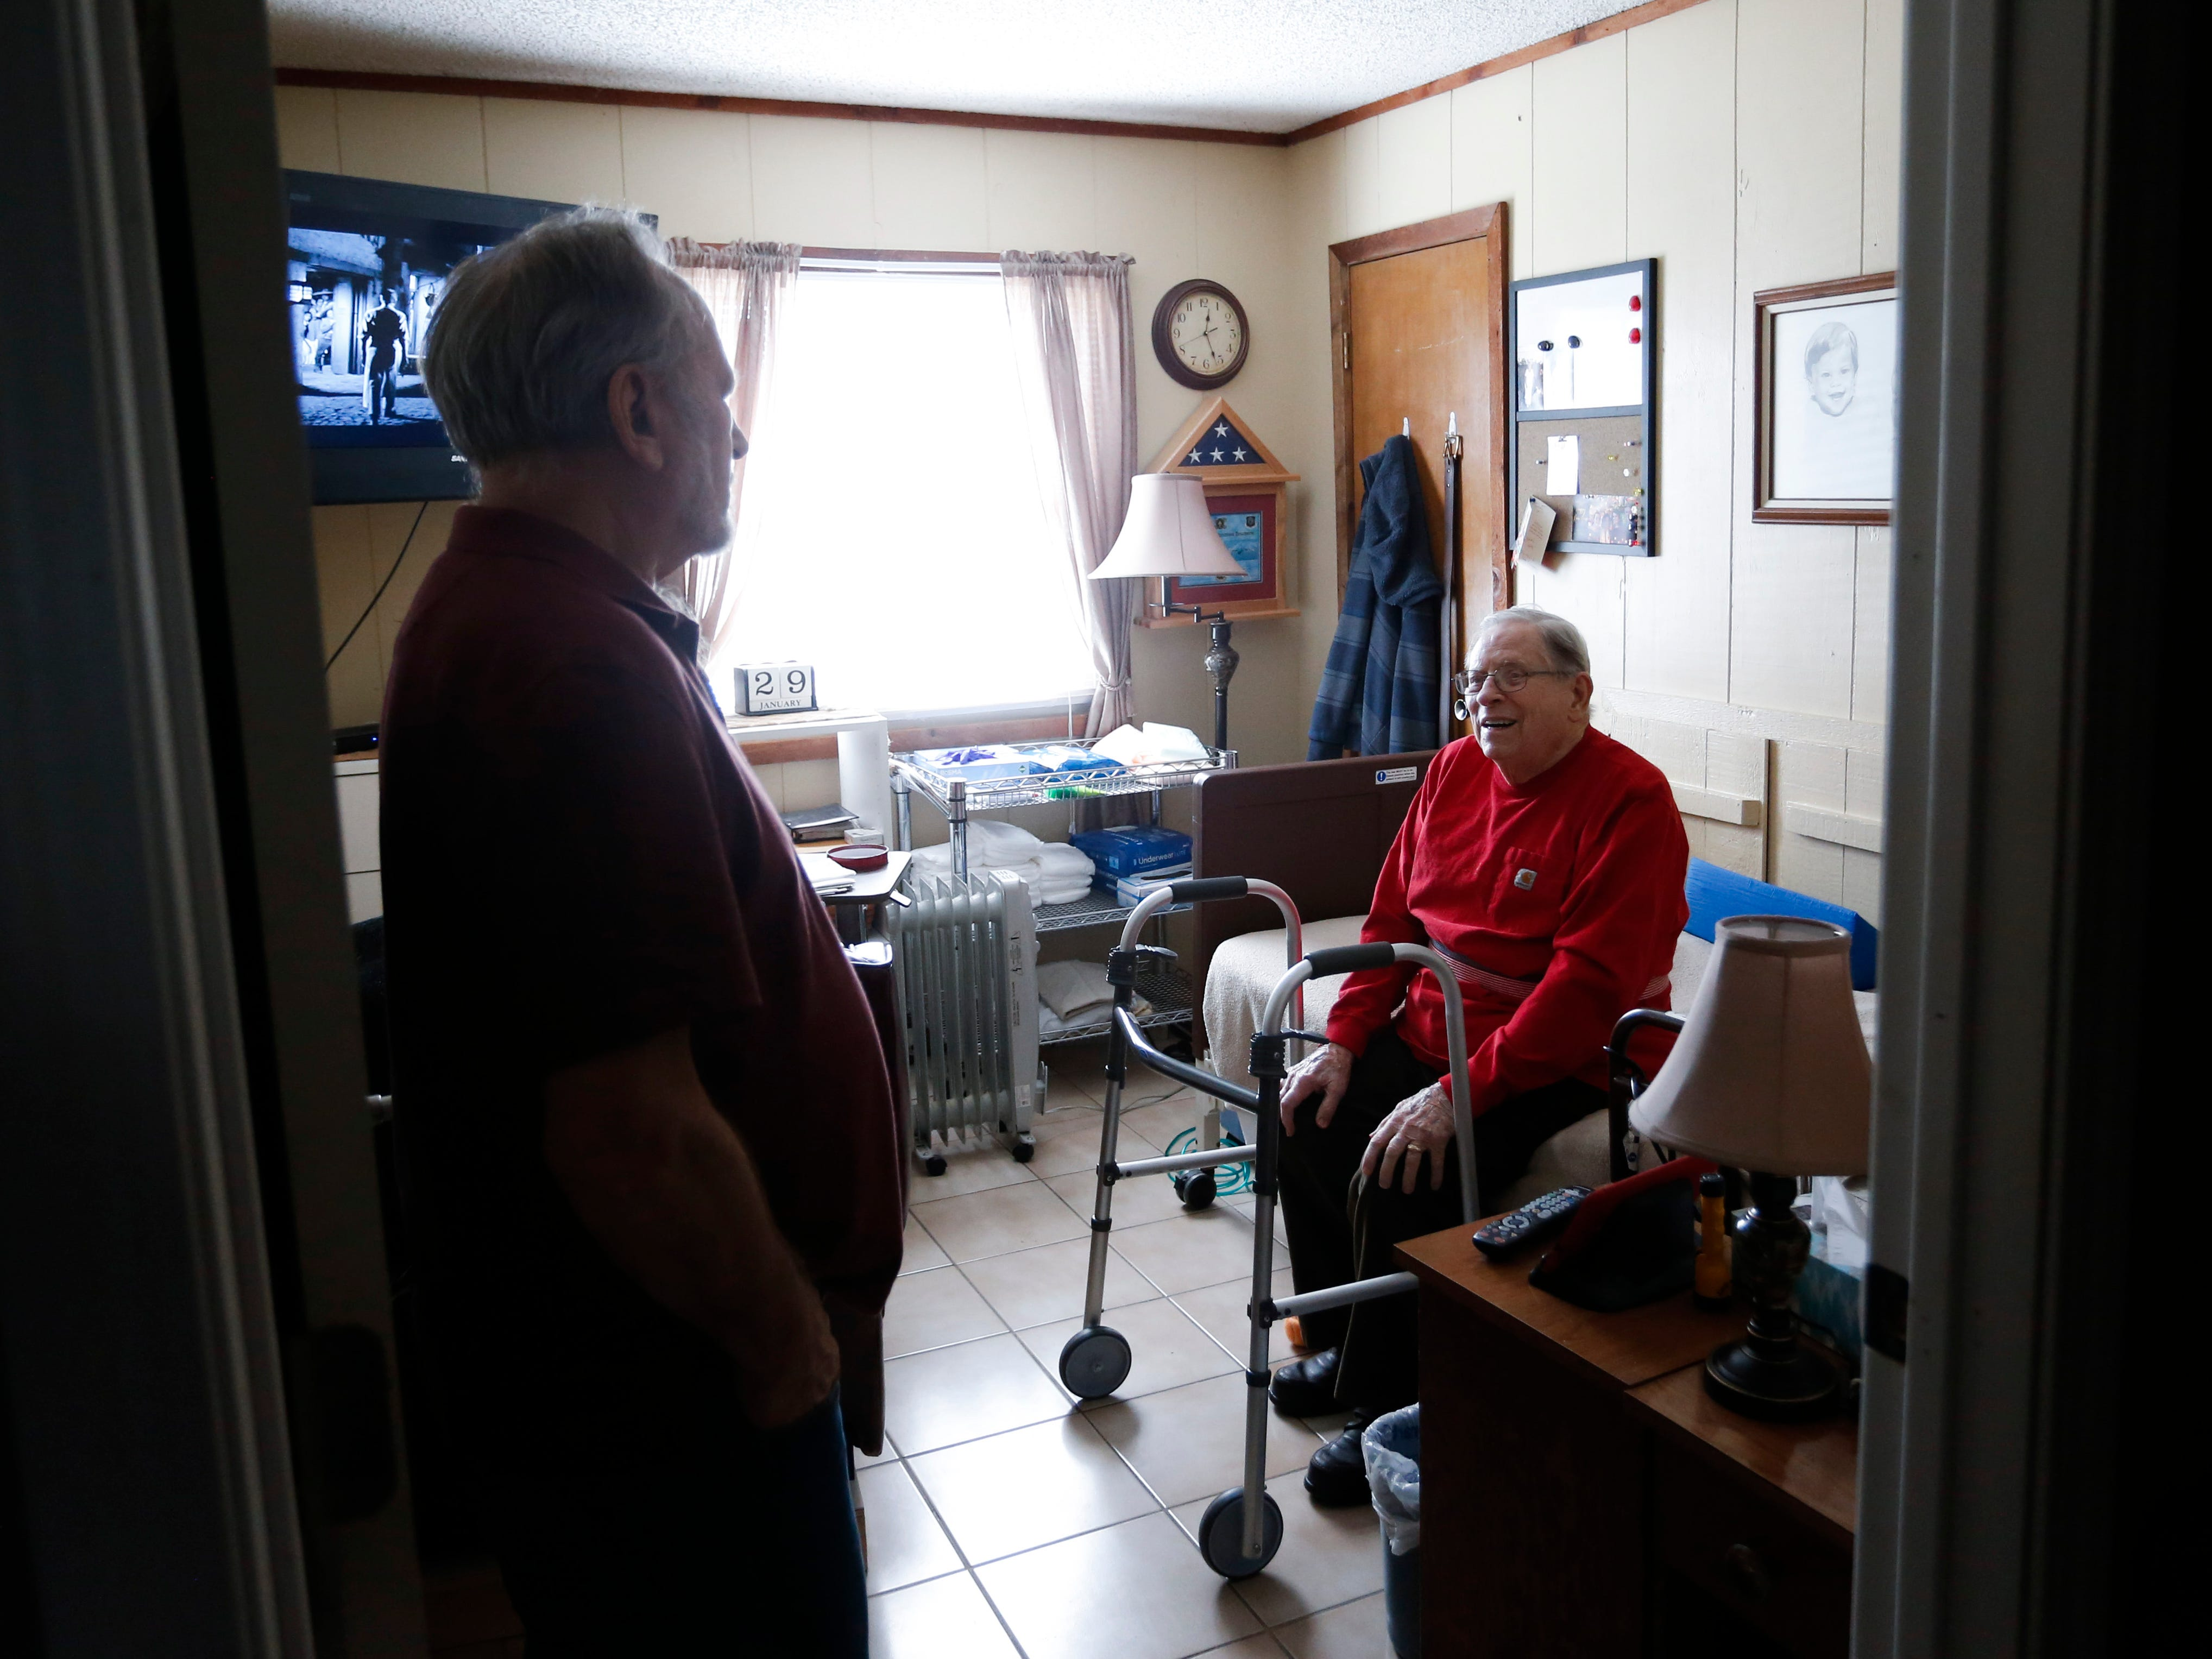 Frank Keim talks with veteran Donald Gundlach, 92, in his room on Tuesday, Jan. 29, 2019. Keim and his wife opened up their home to veterans as part of the VA's Medical Foster Home Program.